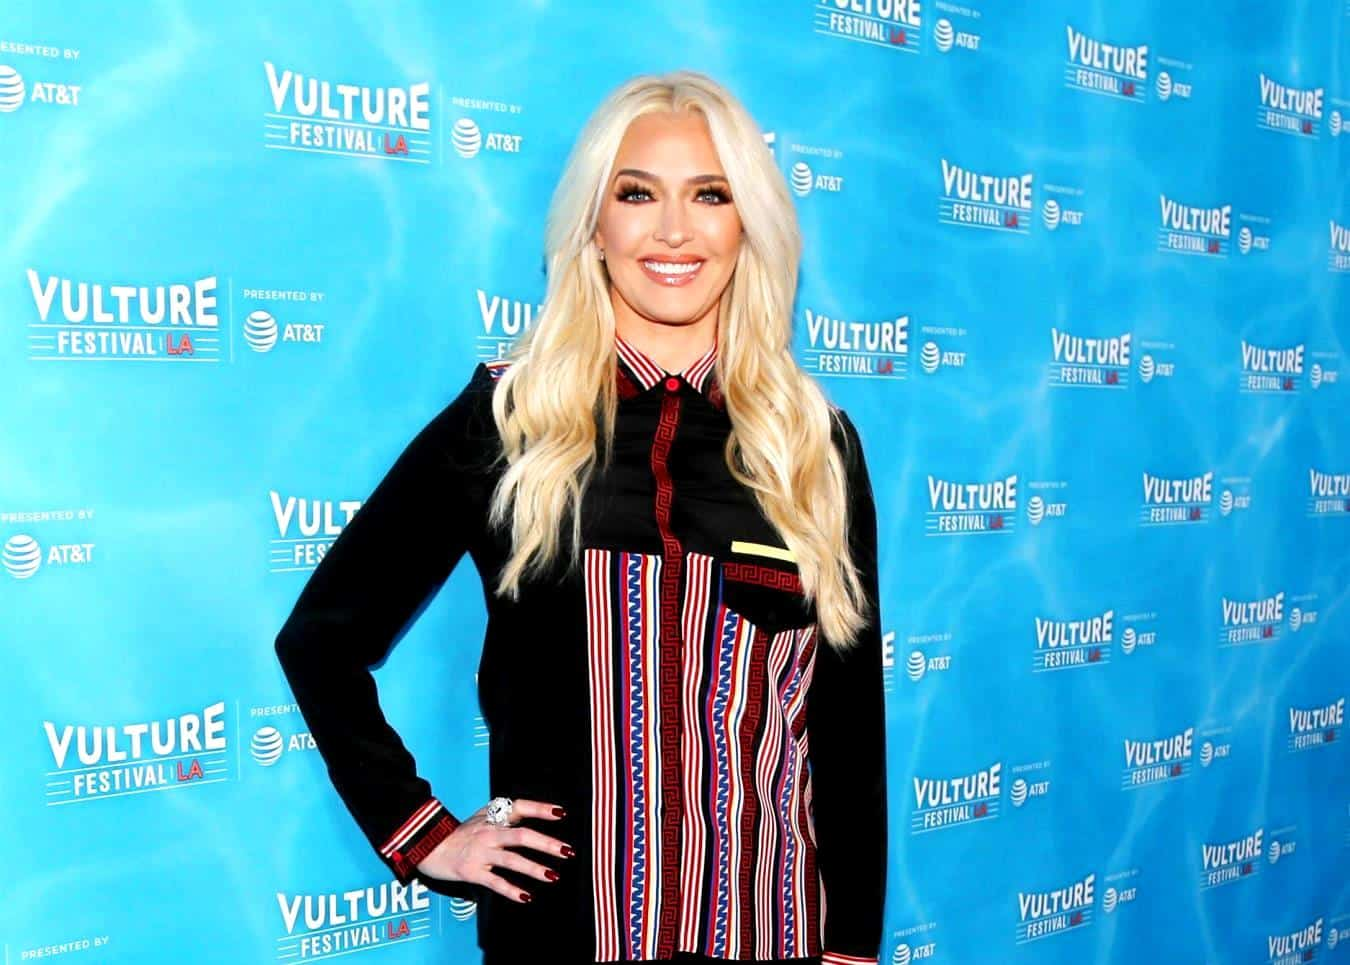 Erika Jayne Reacts to Rumors Stating She Got Fired From the RHOBH After 2 New Cast Members Are Added, Did She Remove the Show From Her Instagram Bio?